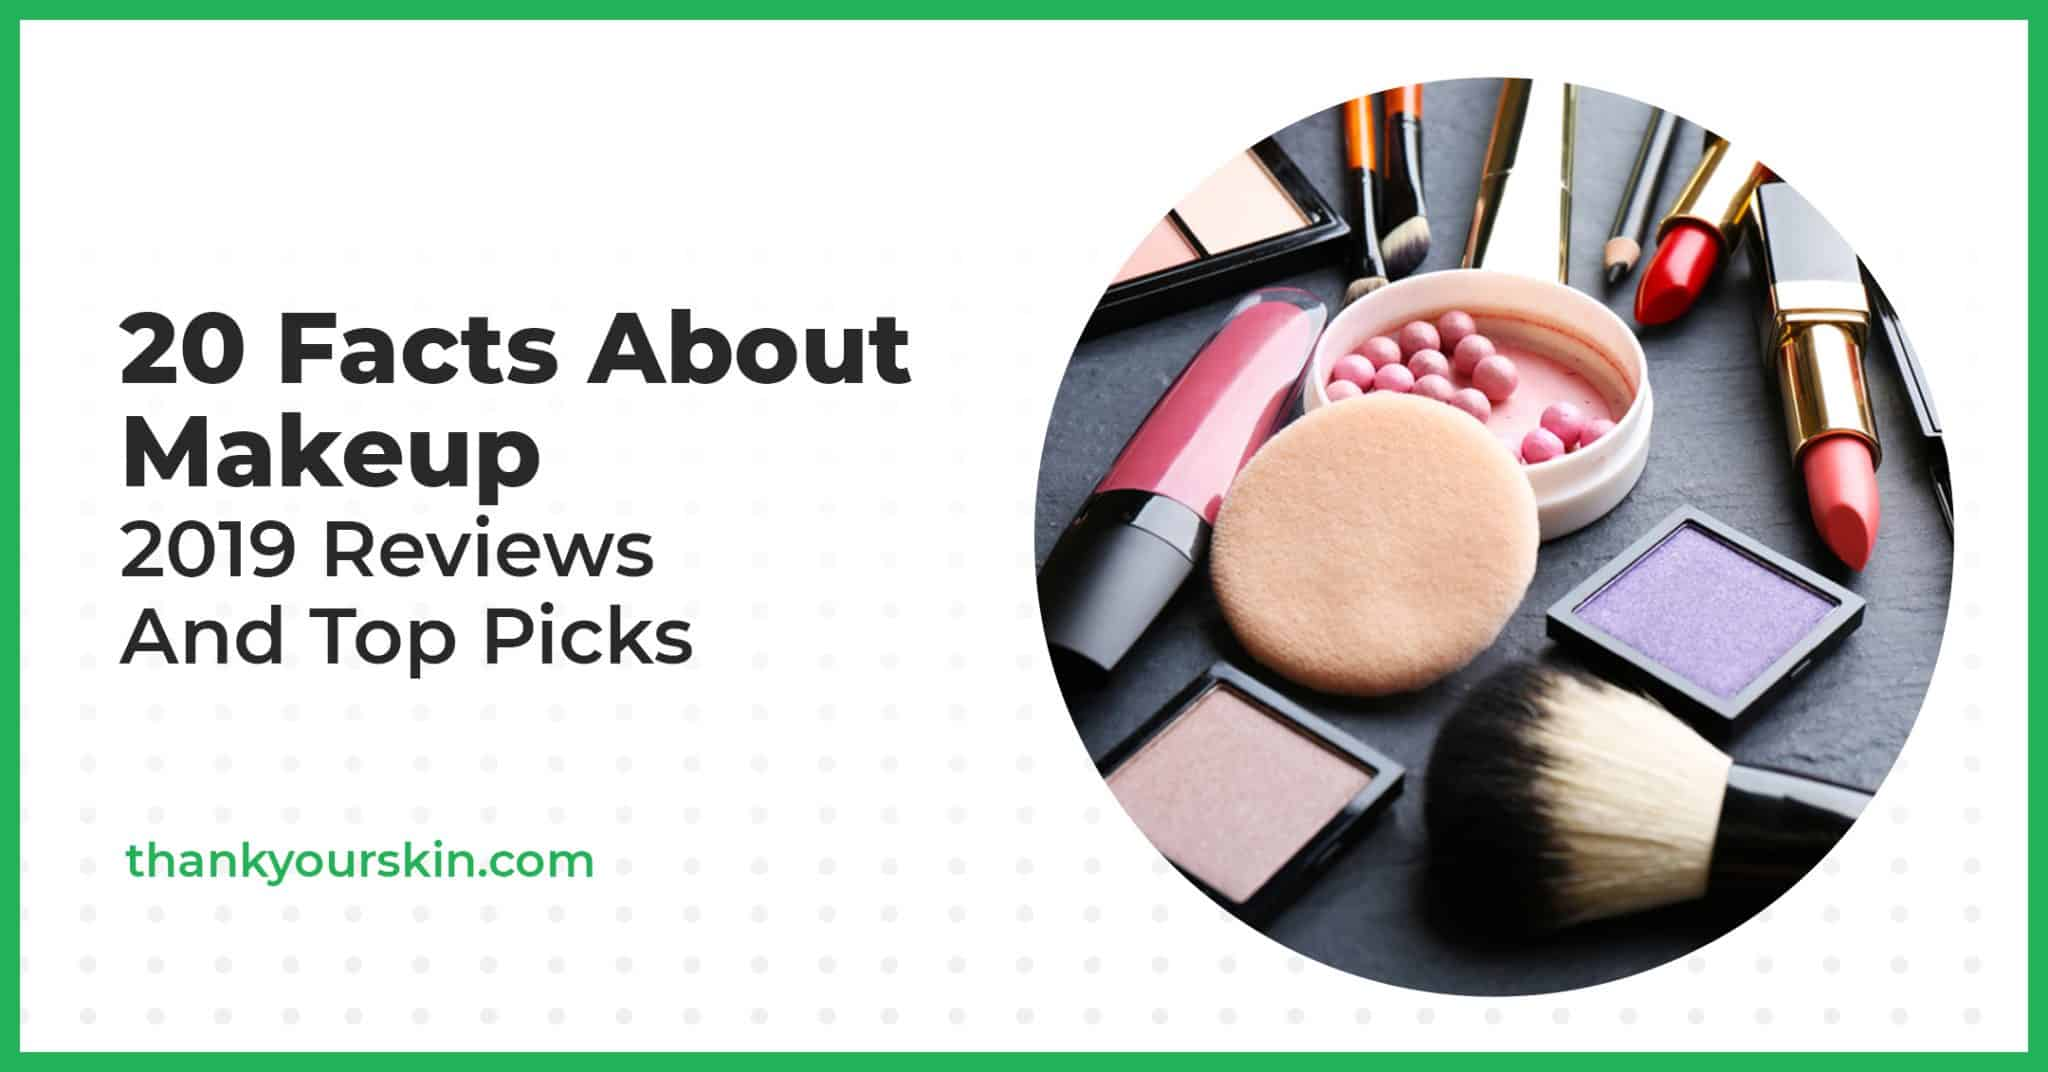 20 Facts About MakeUp and Cosmetics: Fun and Unique Stories Throughout History